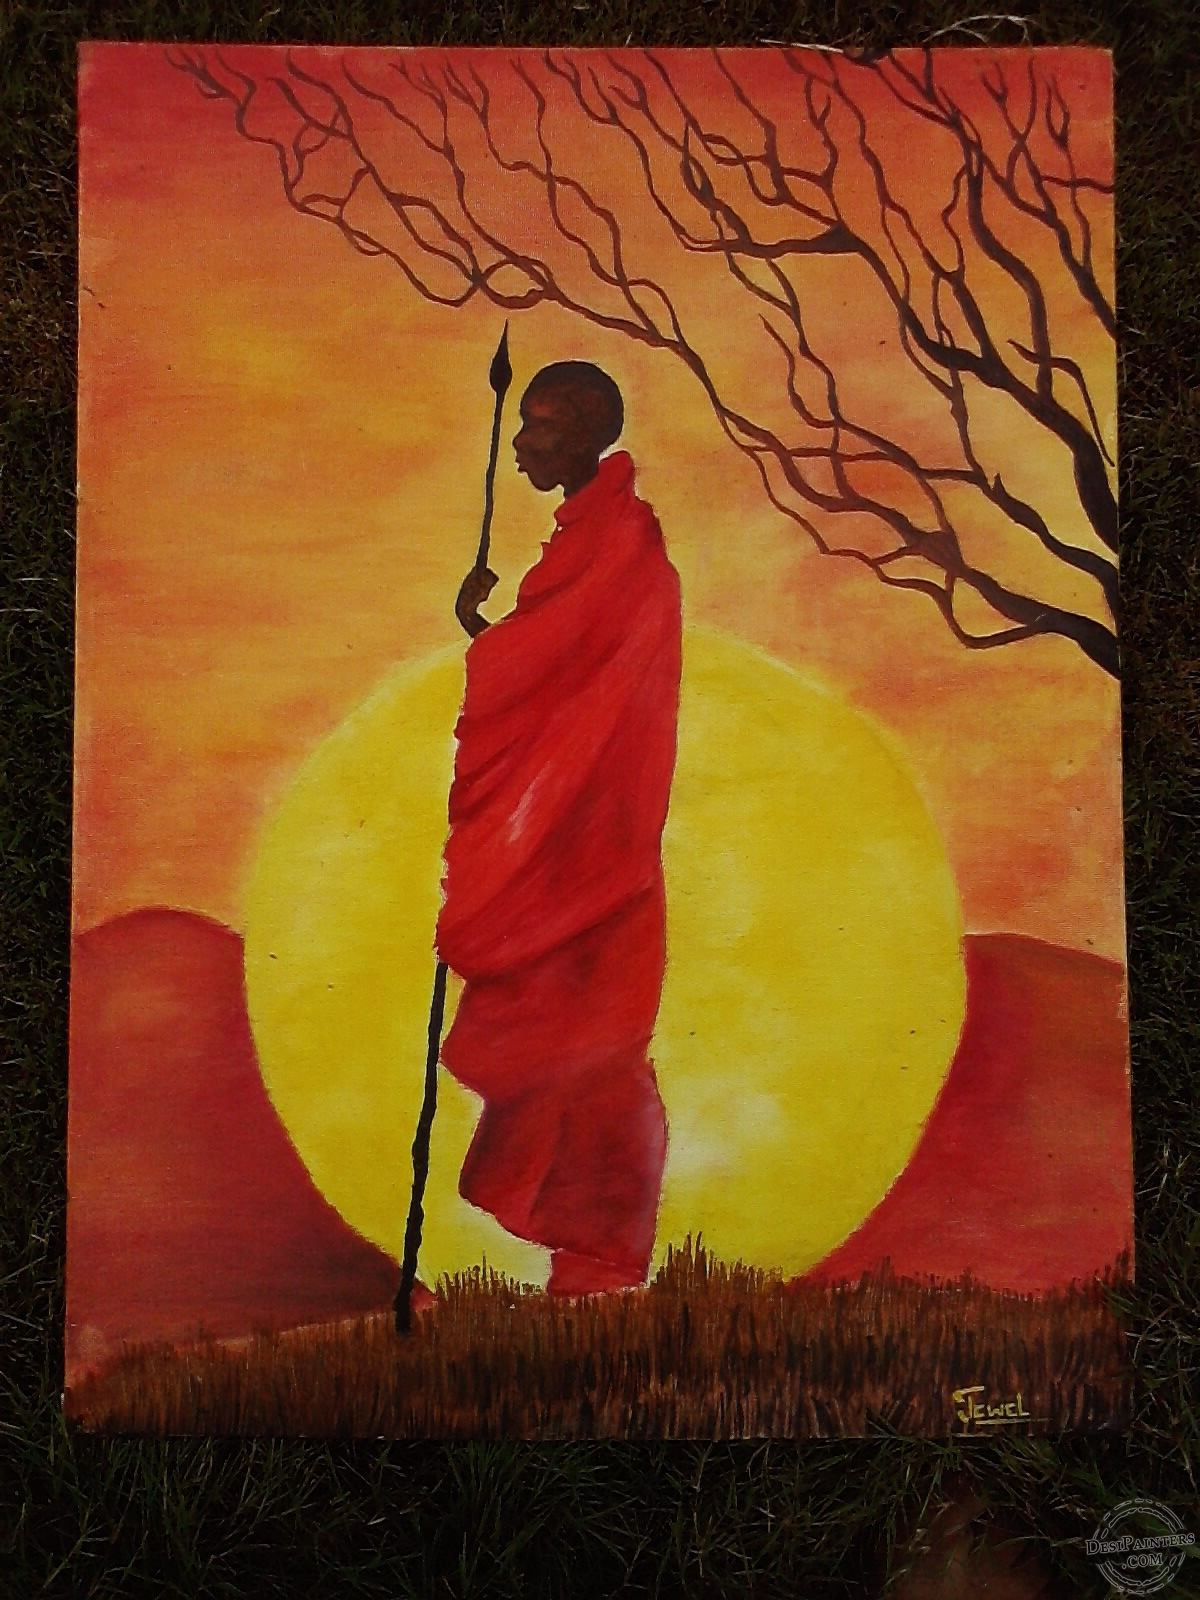 An oil painting of an ancient African man